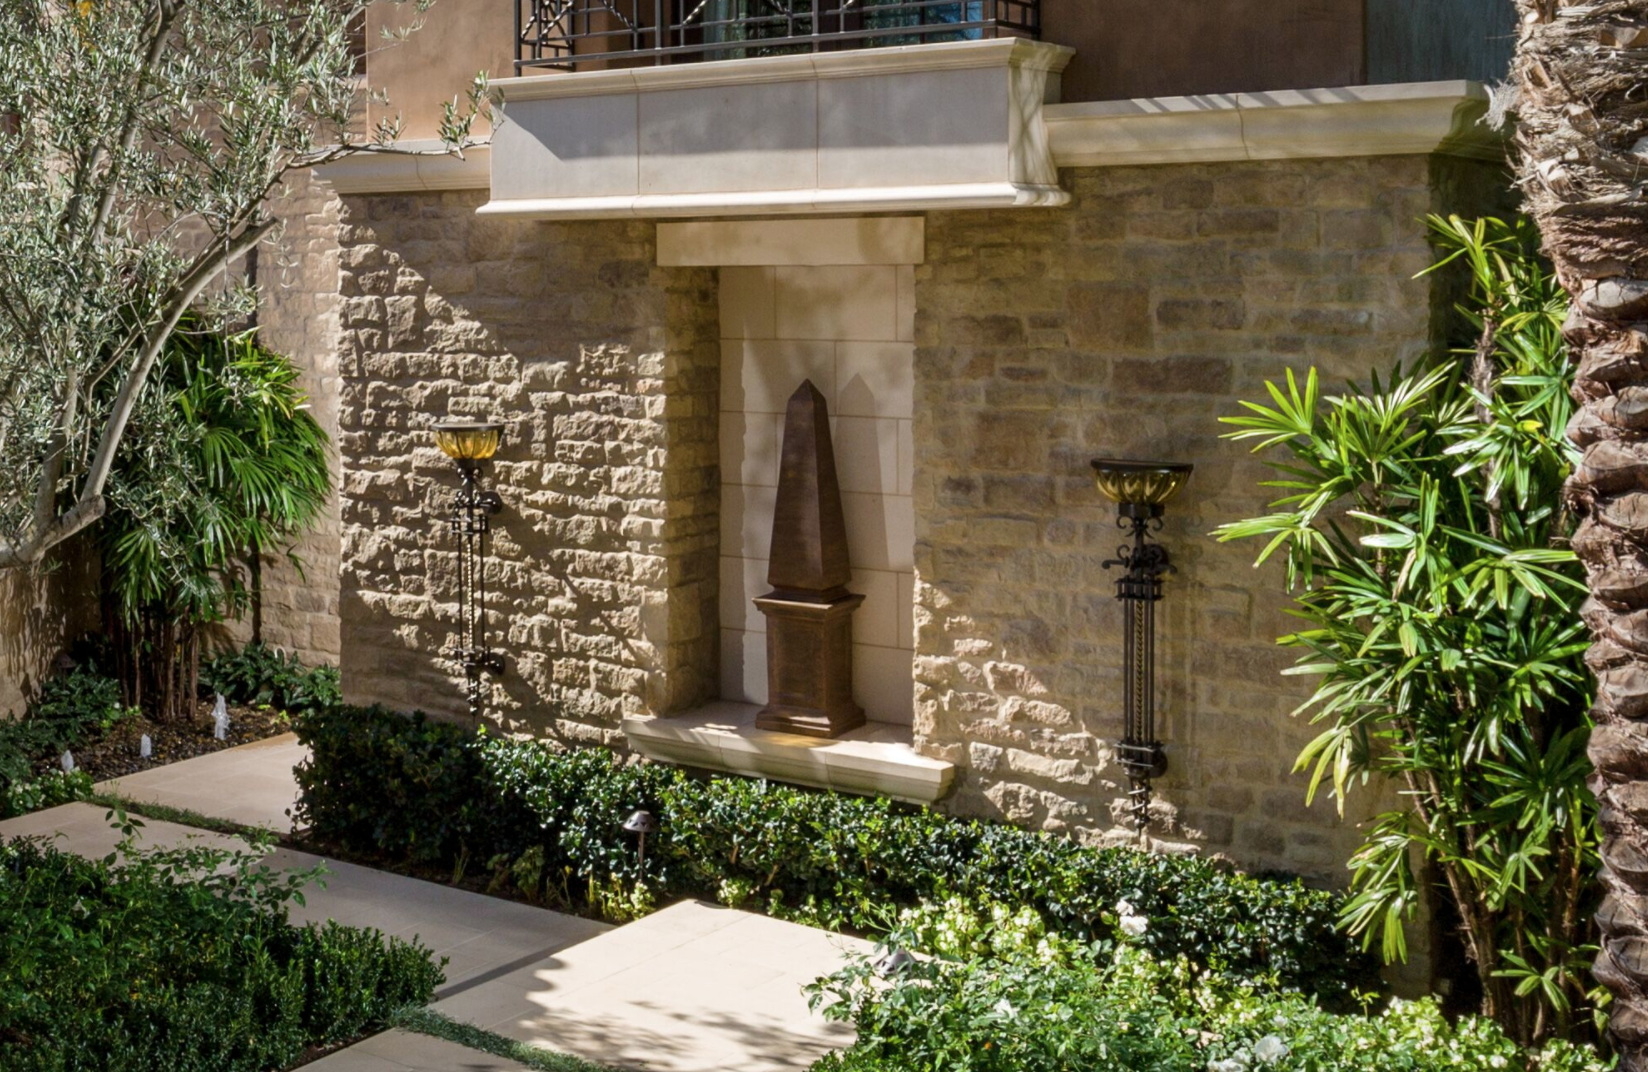 Top 3 Natural Stone Masonry Wall Ideas for Laguna Beach, CA Homes